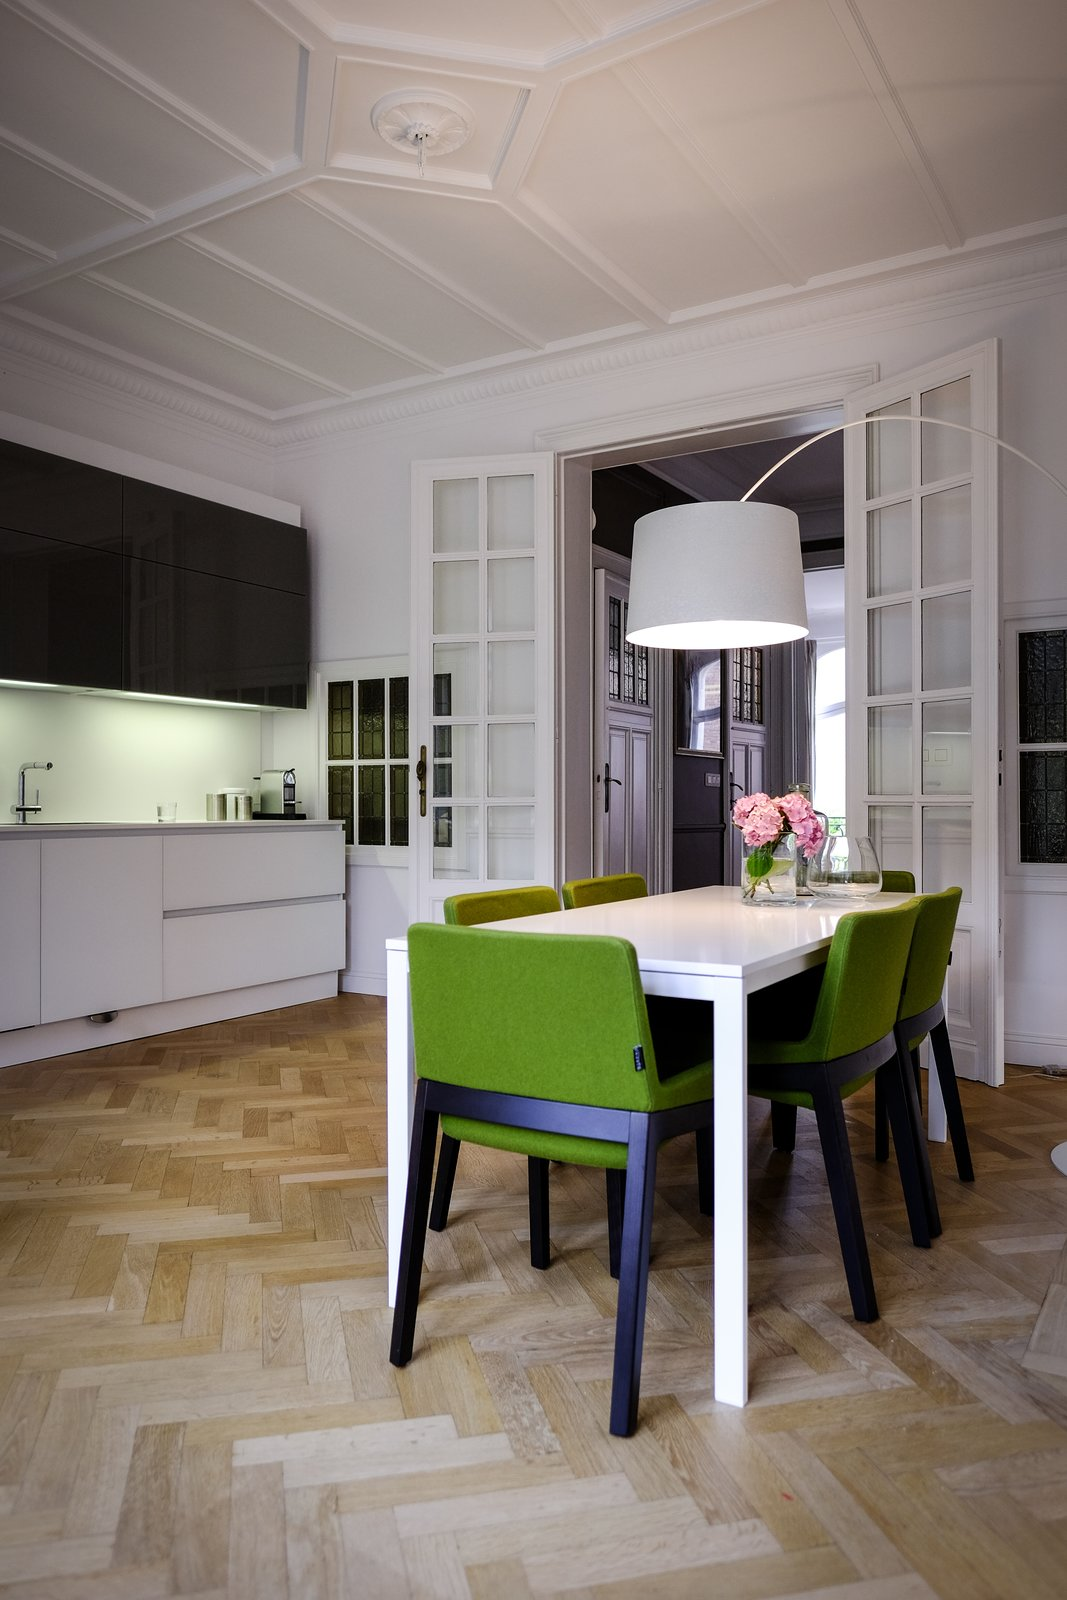 The dining room and open kitchen